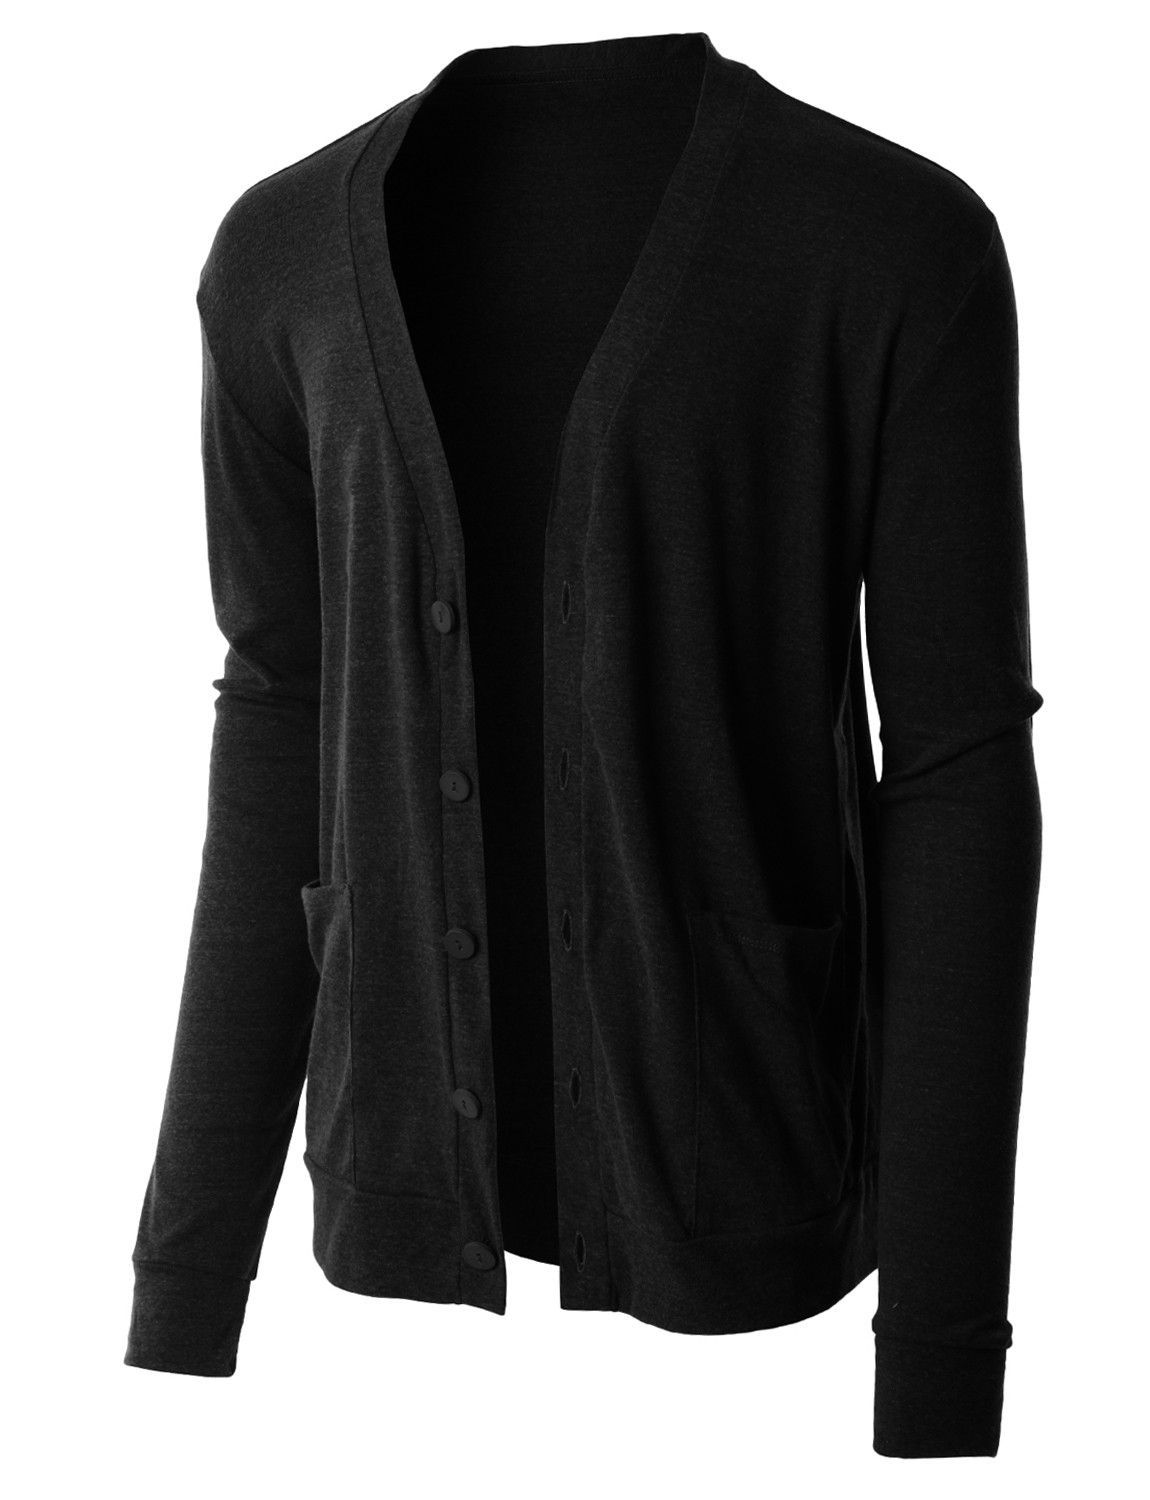 PREMIUM Mens Lightweight Soft Ribbed Knit V Neck Cardigan Sweater ...